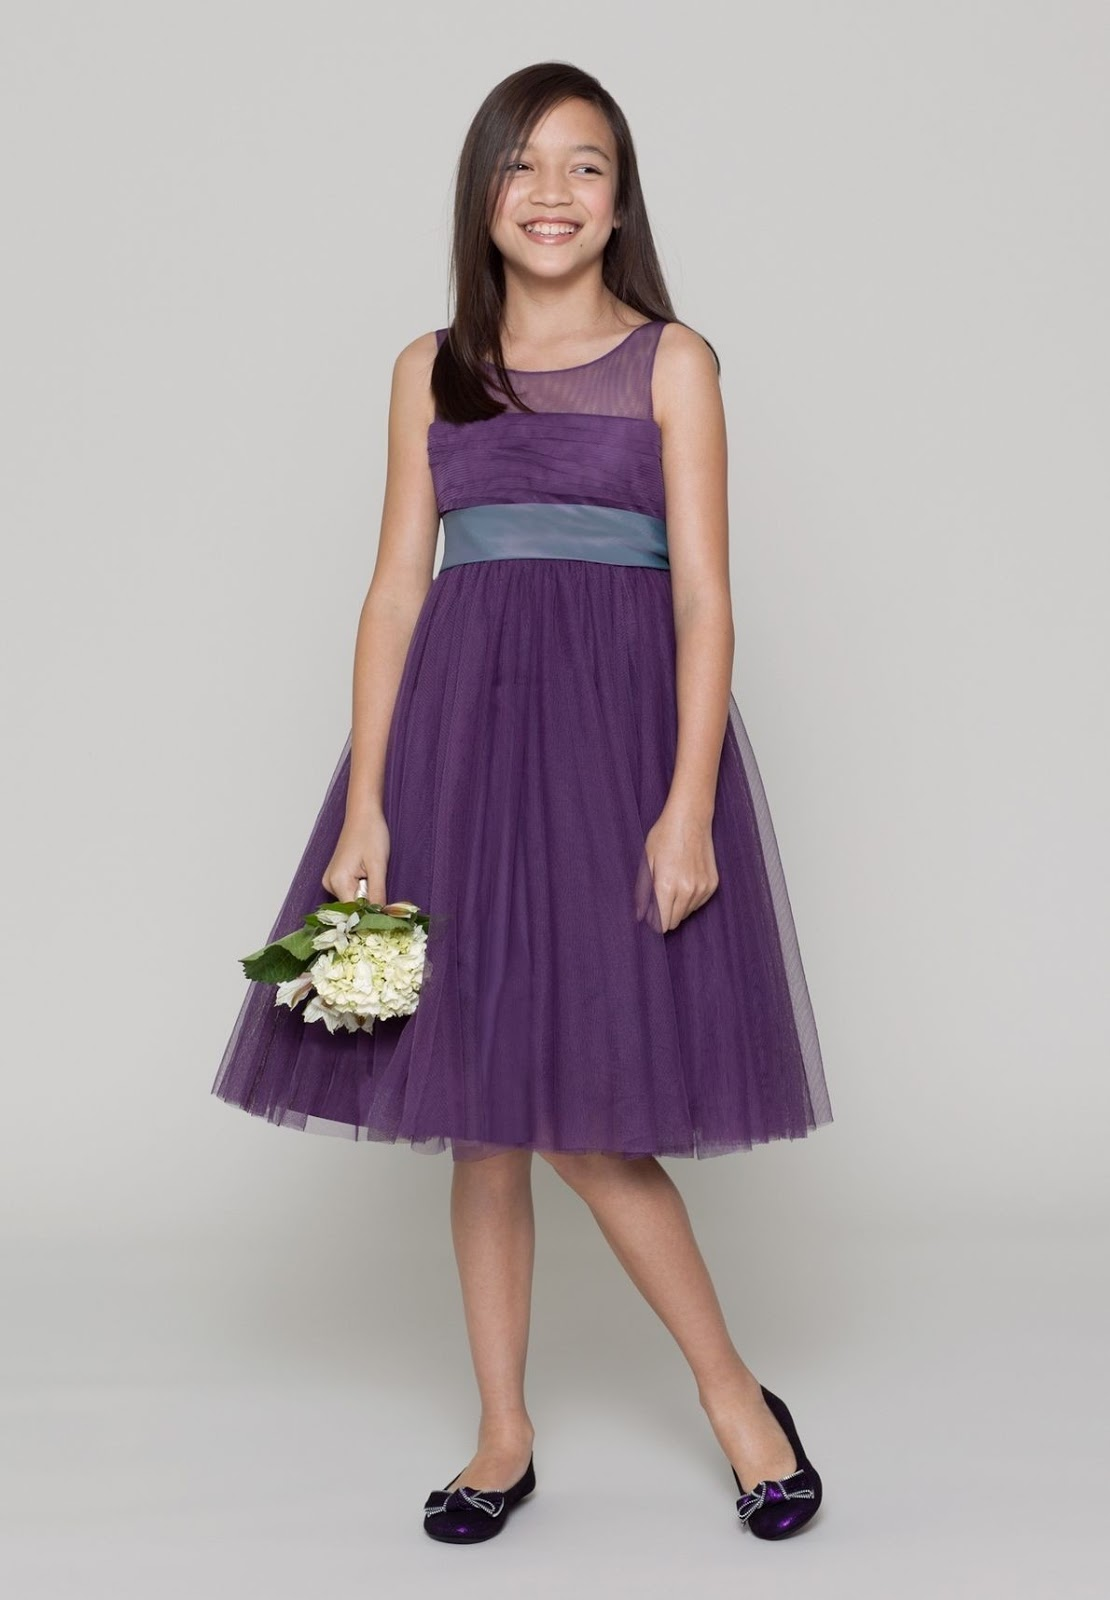 Matching Junior Wedding Dresses - Junoir Bridesmaid Dresses